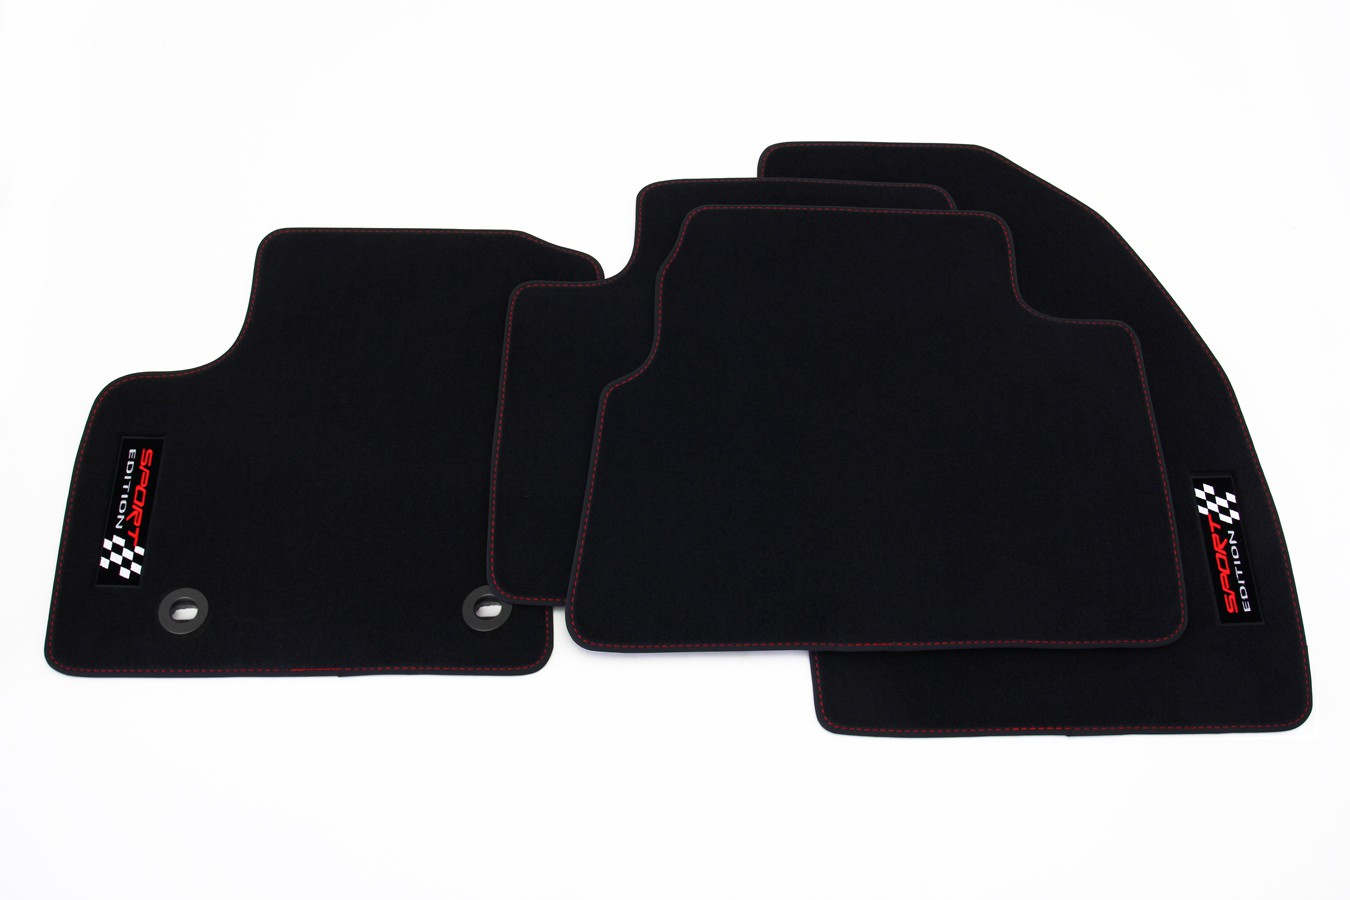 sport tapis de sol pour ford kuga 1 i annee 2008 2012 With tapis de sol ford kuga